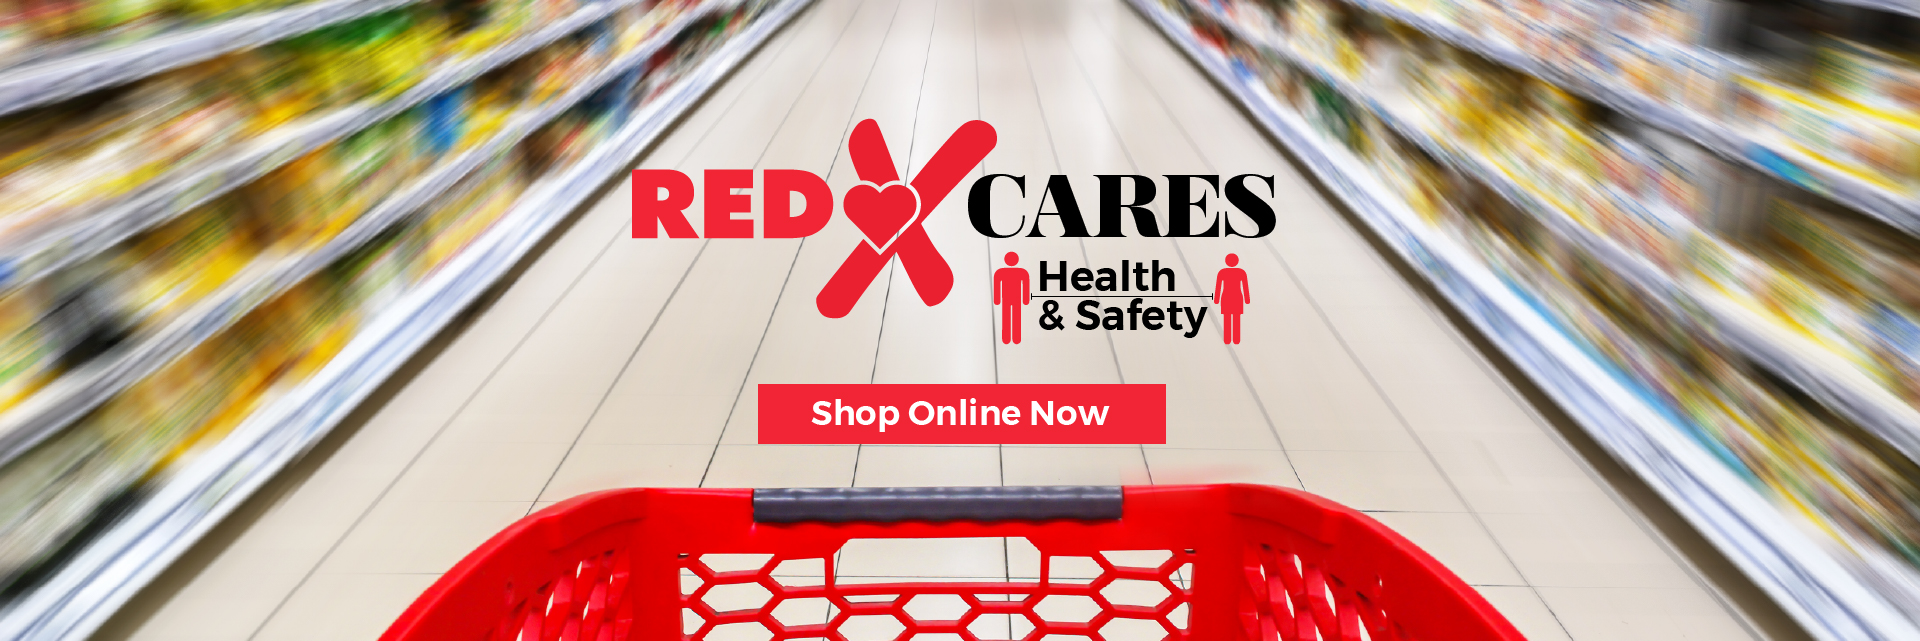 RedXCares - Health & Safety